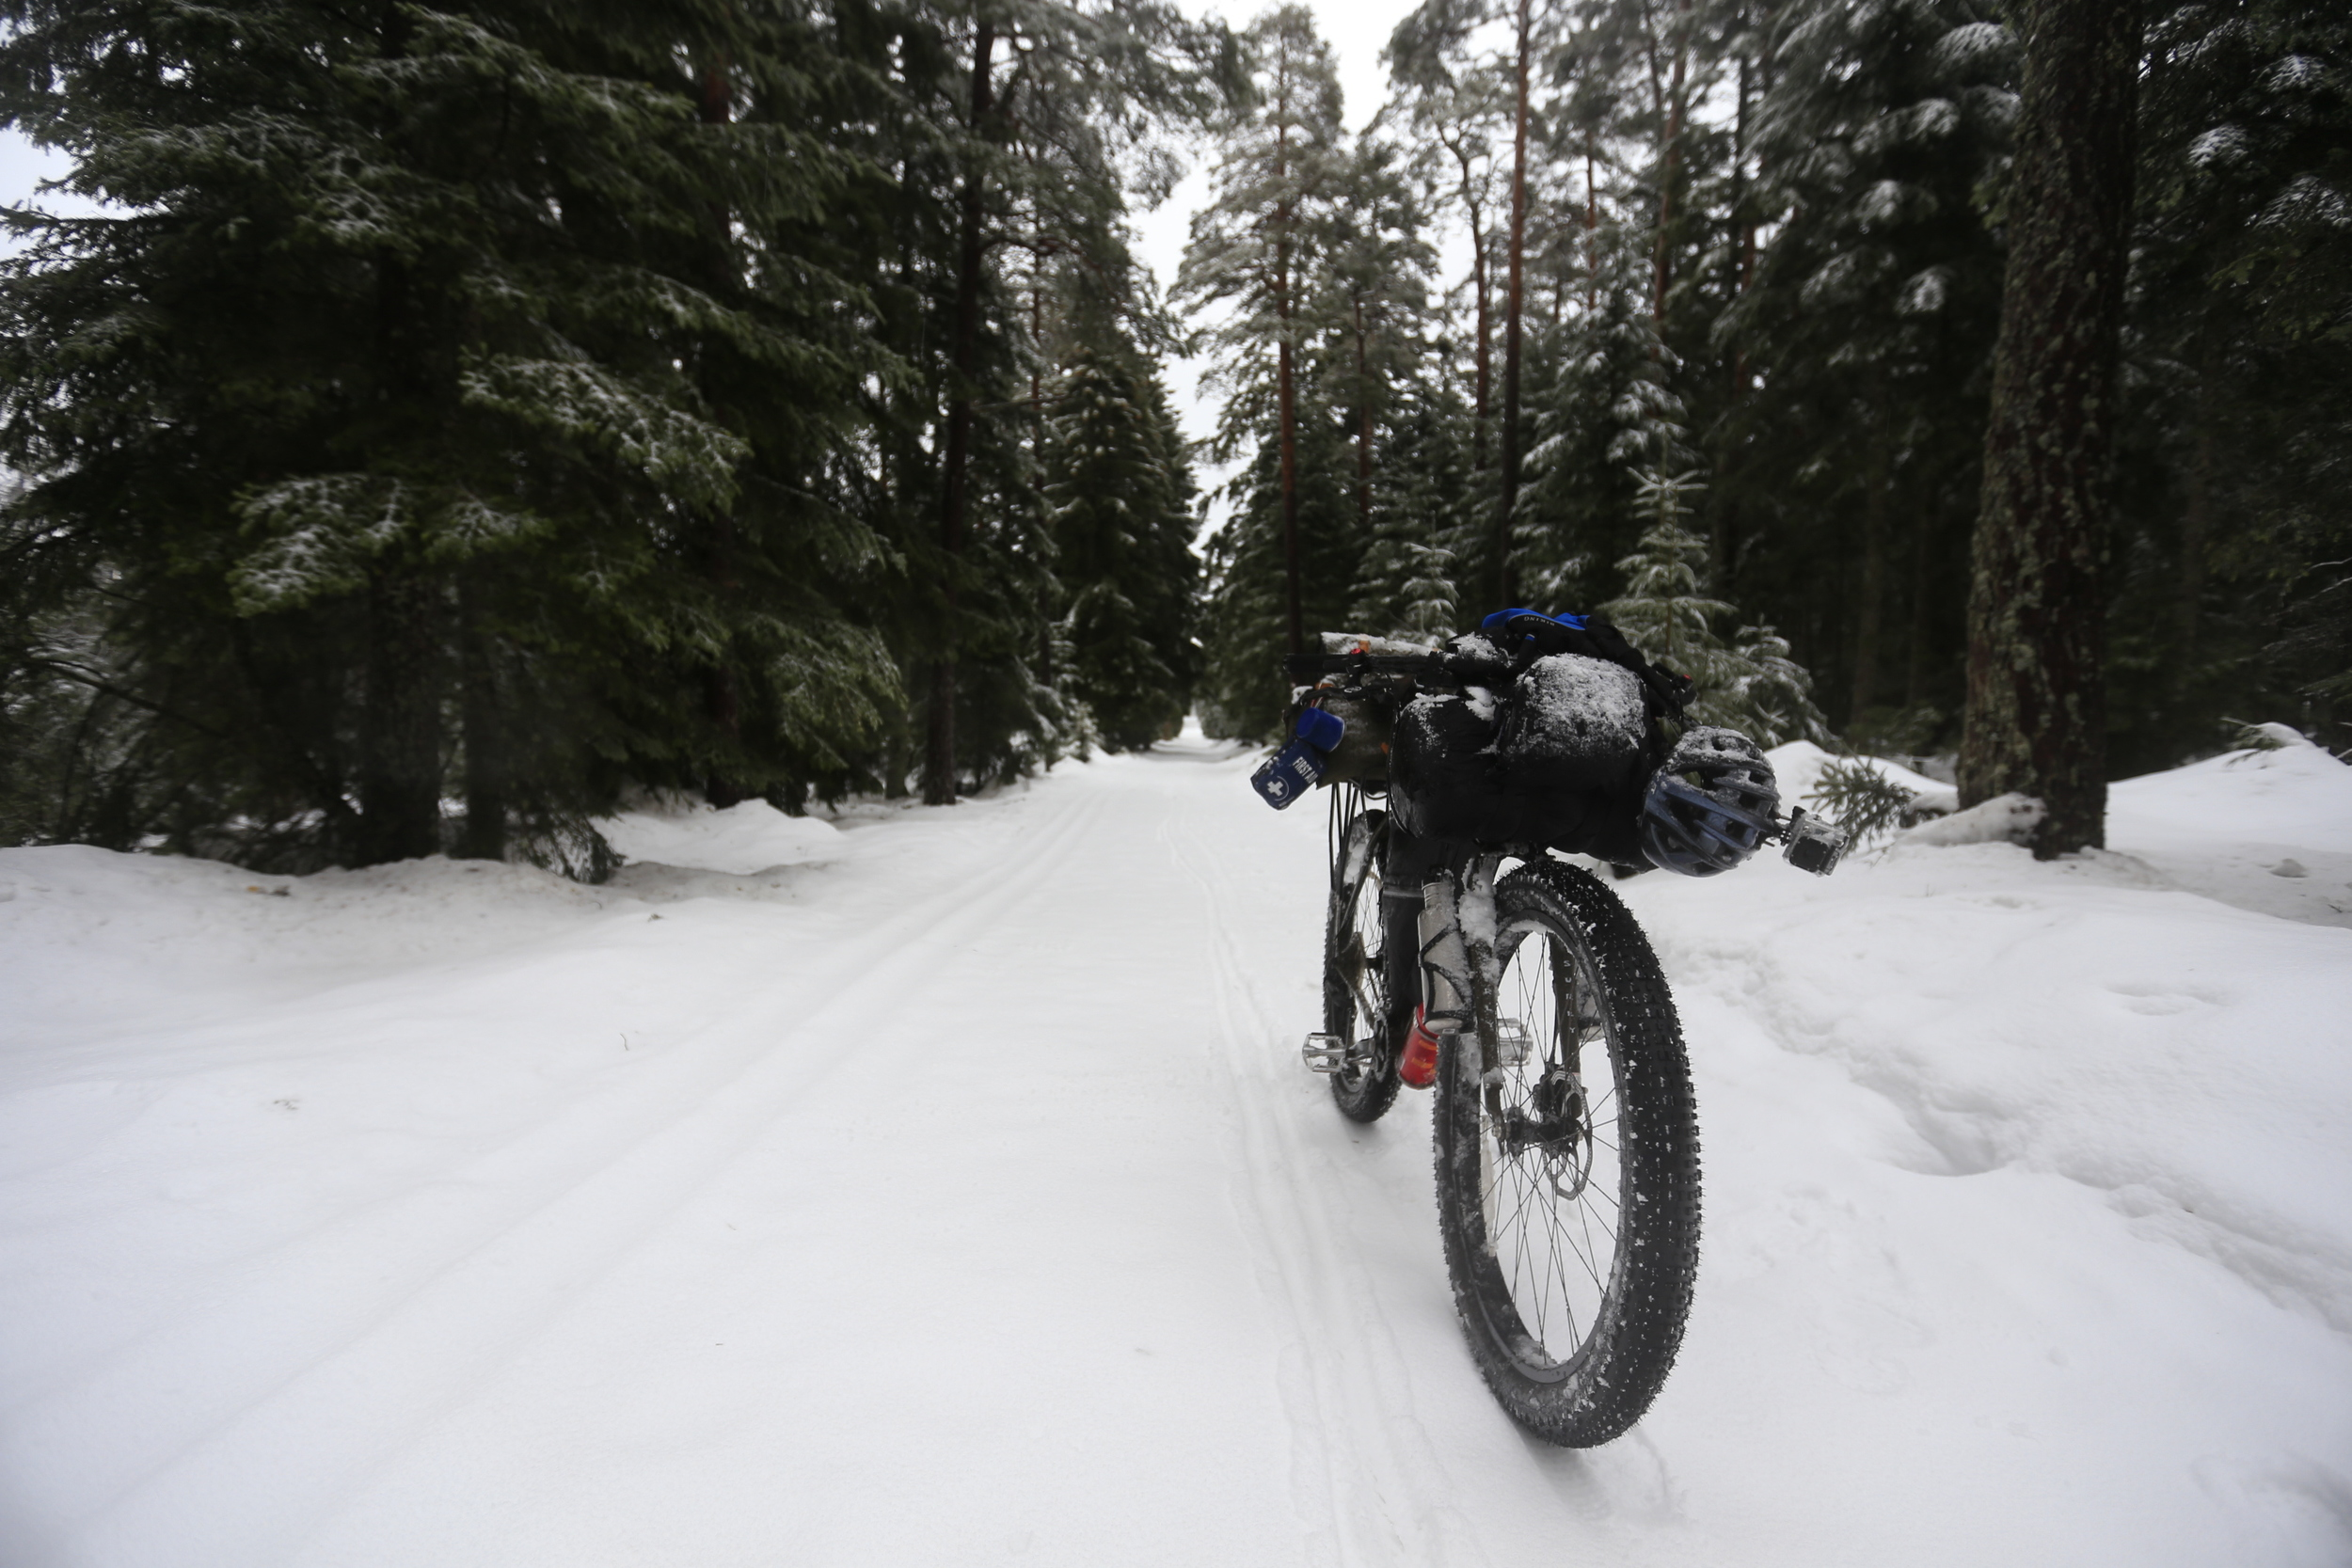 surly, surly ecr, fat biking, knards, snow, singletrack, woodland, black forest, germany, gopro, helmet, trangia, bicycle touring apocalypse, bicycle